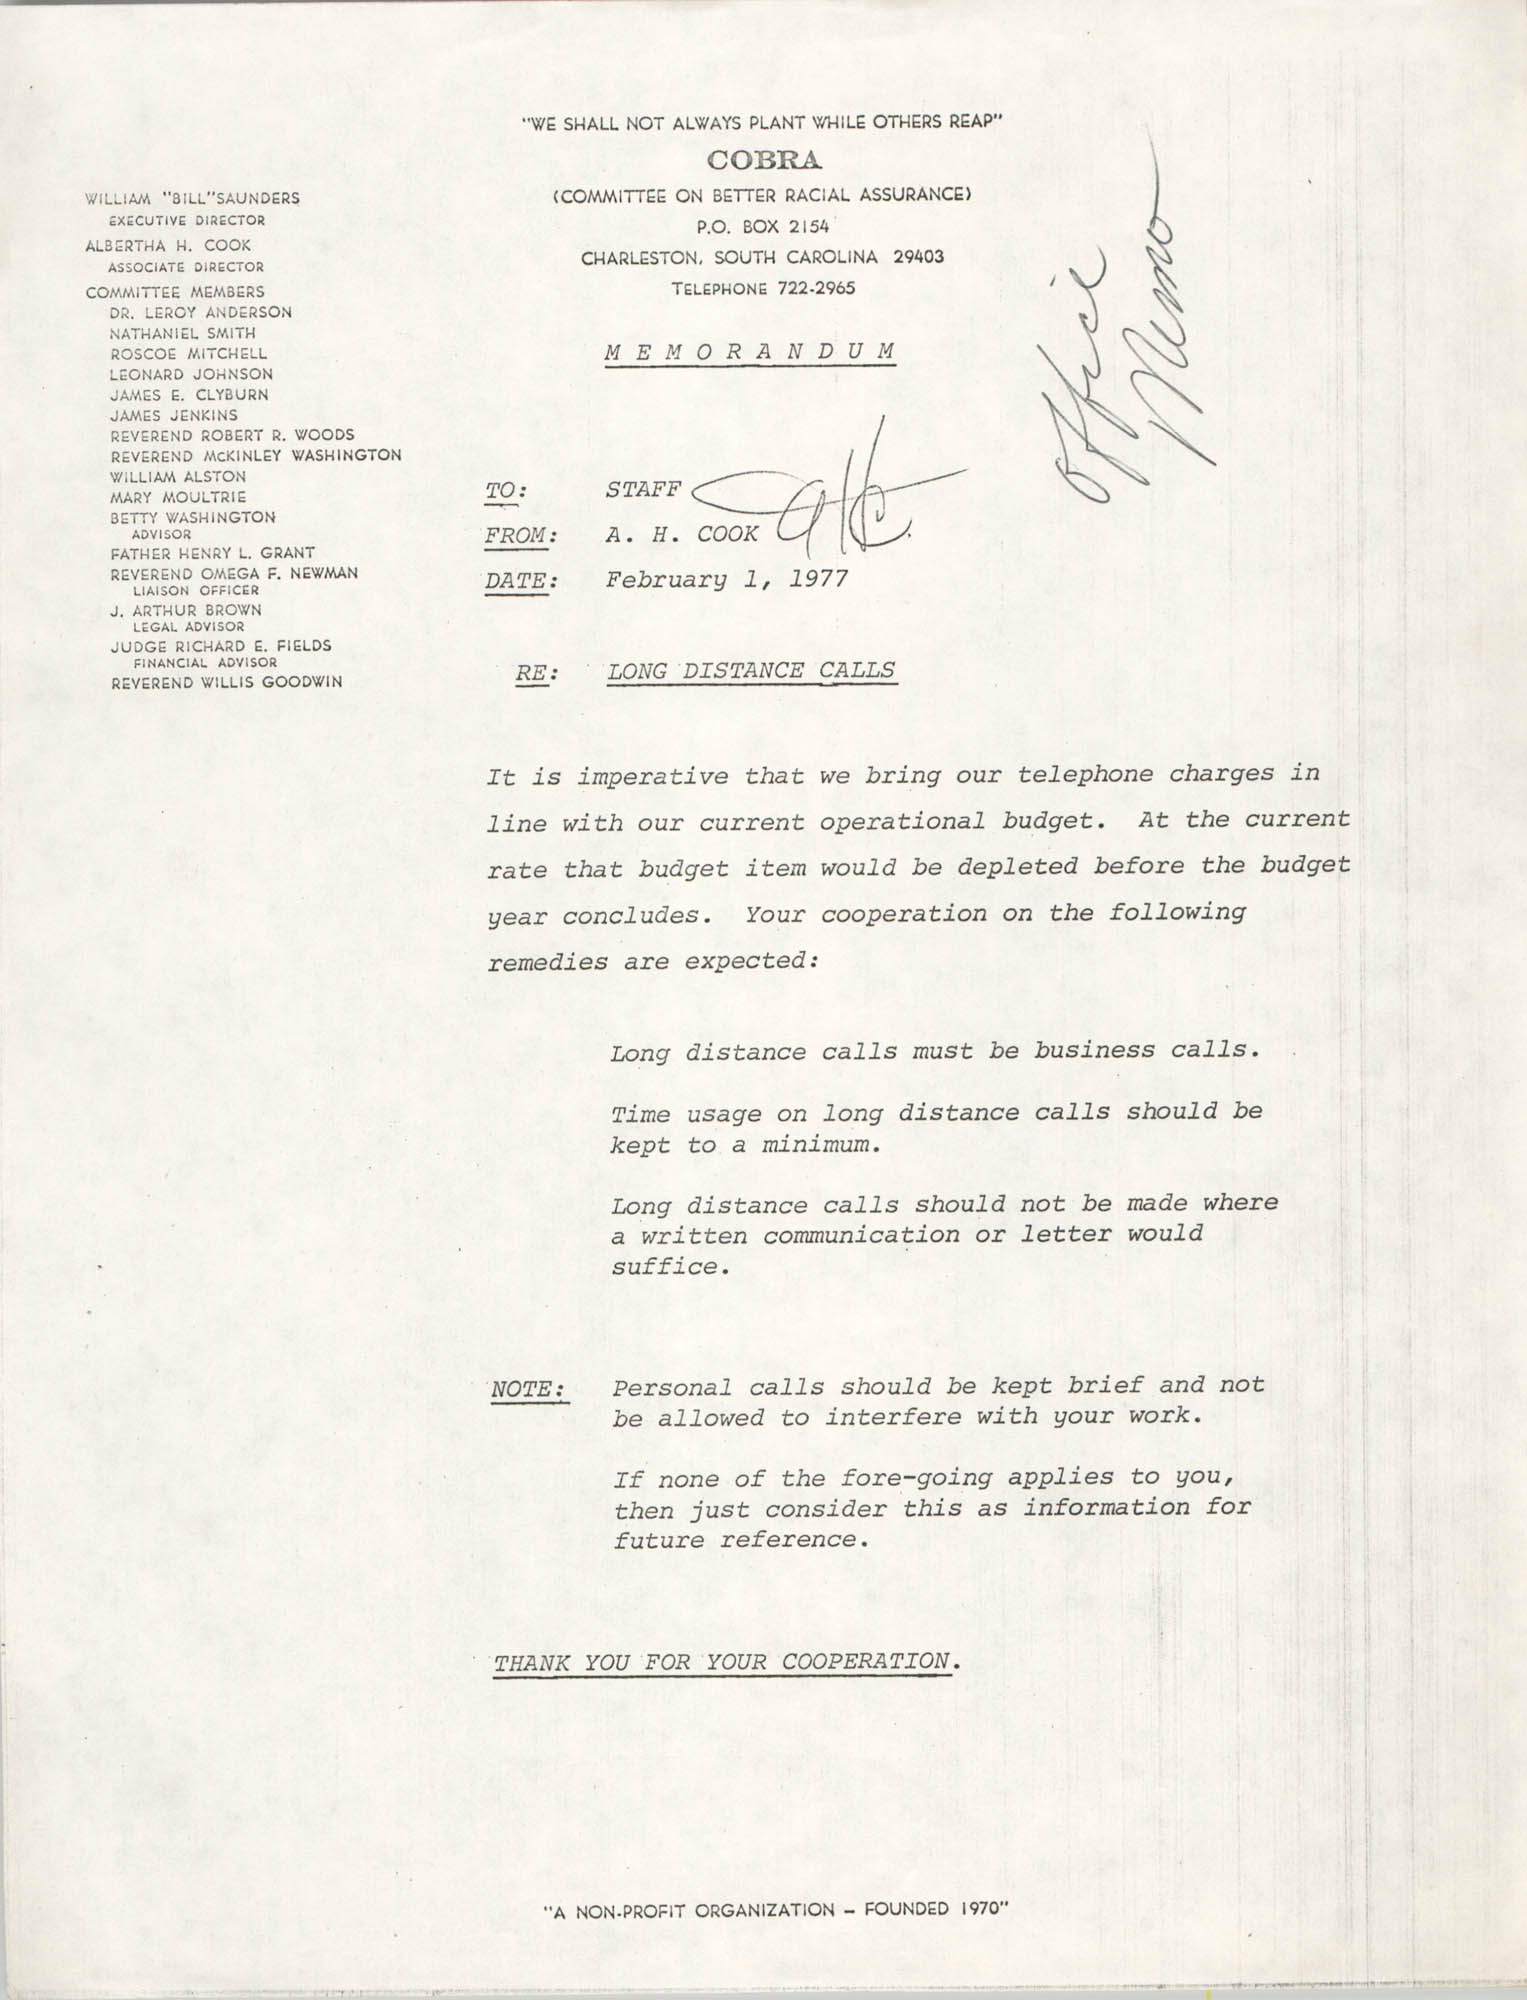 COBRA Memorandum, February 1, 1977